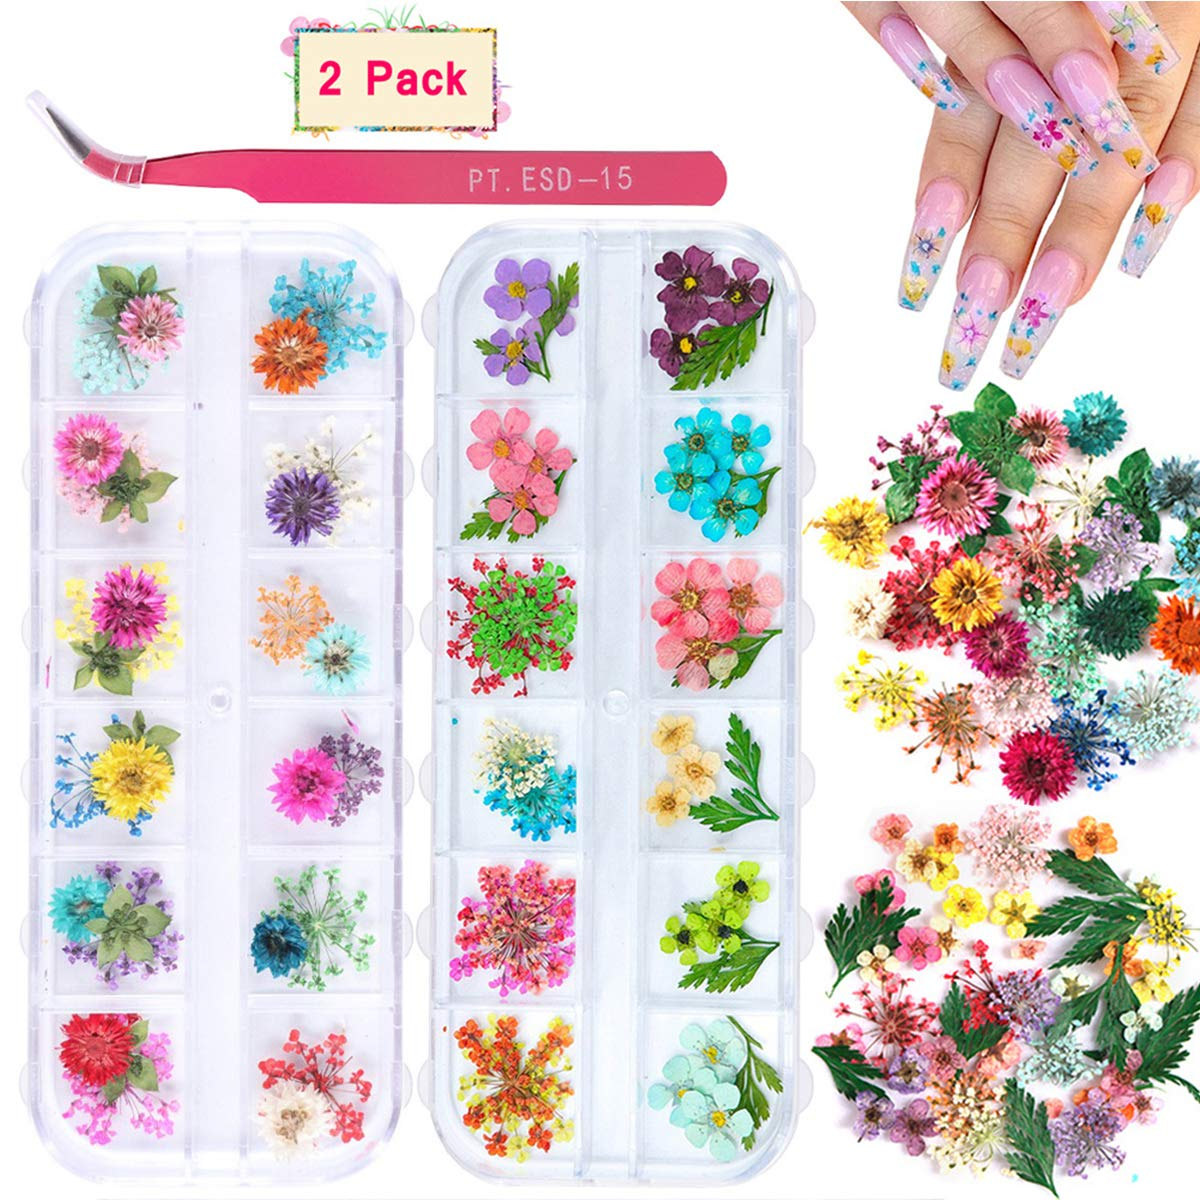 2 Boxes Dried Flowers for Nail Art, KISSBUTY 24 Colors Dry Flowers Mini Real Natural Flowers Nail Art Supplies 3D Applique Nail Decoration Sticker for Tips Manicure Decor (Gypsophila Flowers Leaves): Beauty